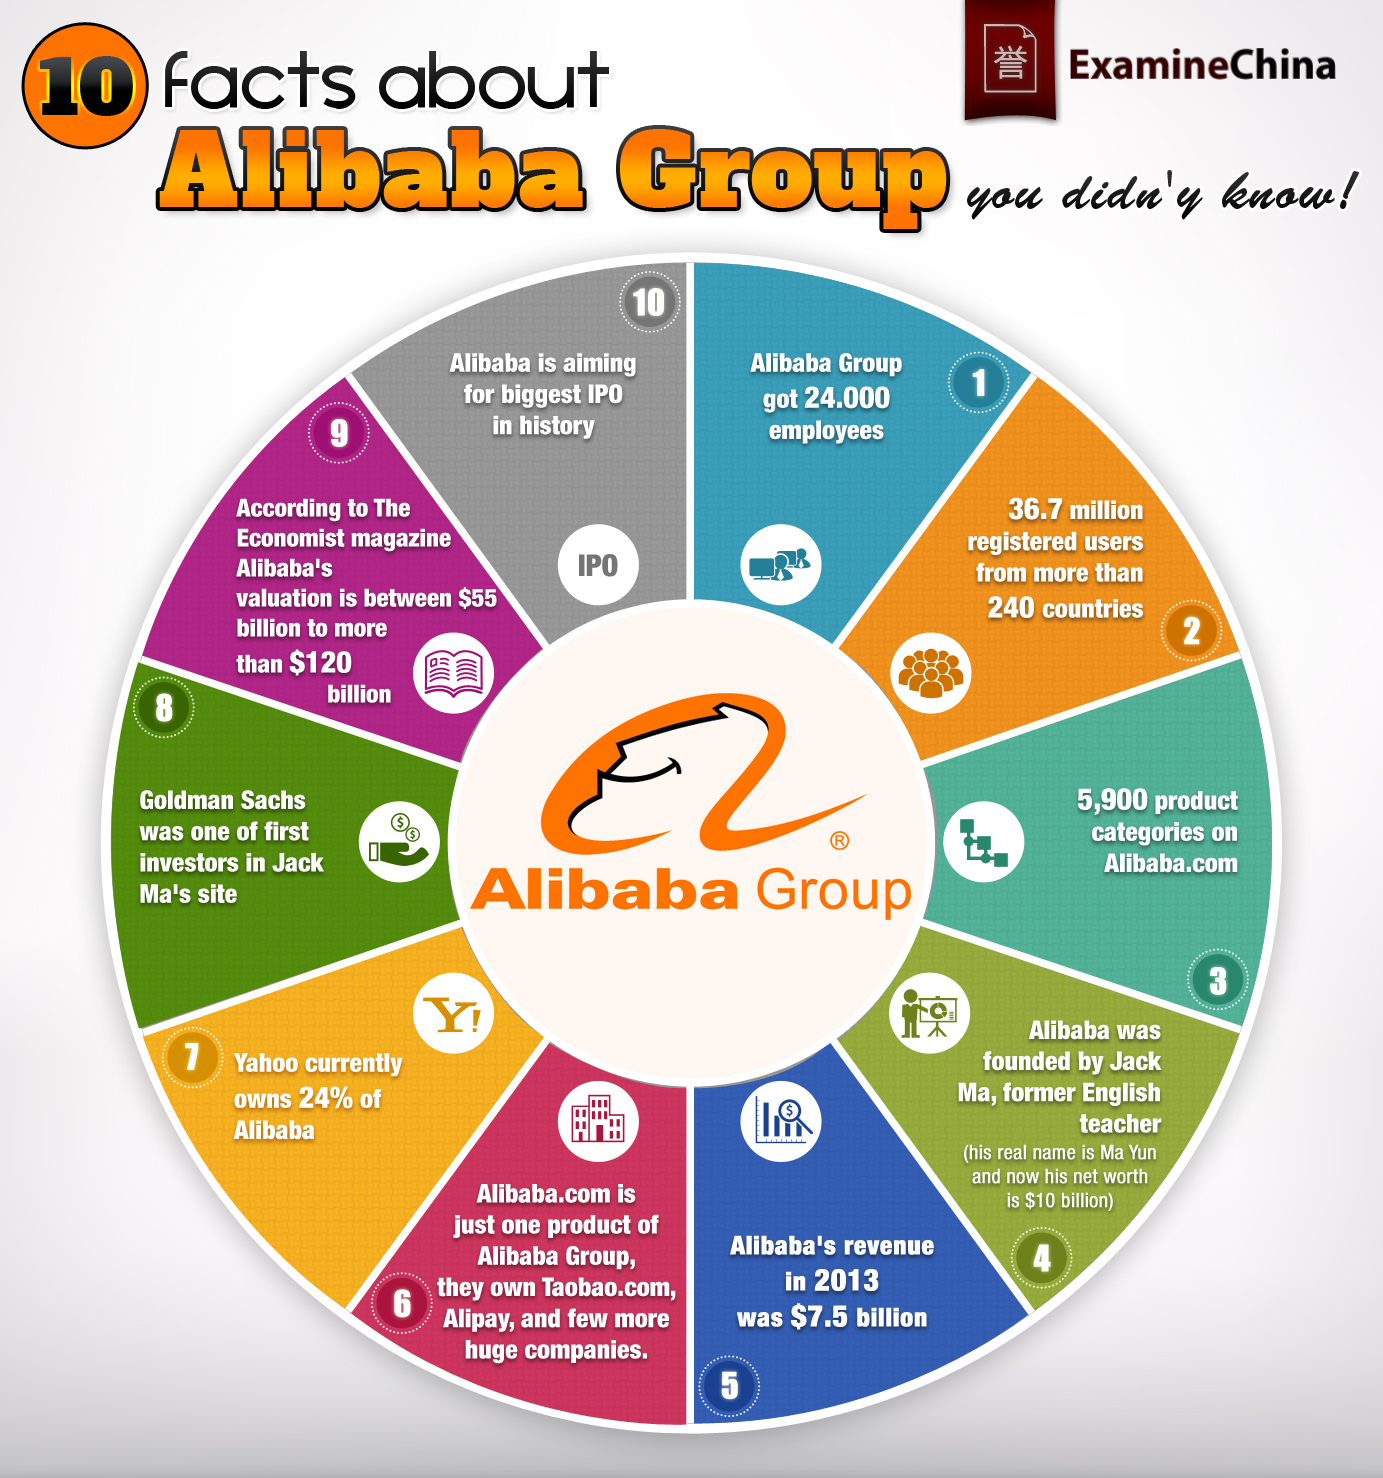 10_facts_about_Alibaba_Group_you_didny_know